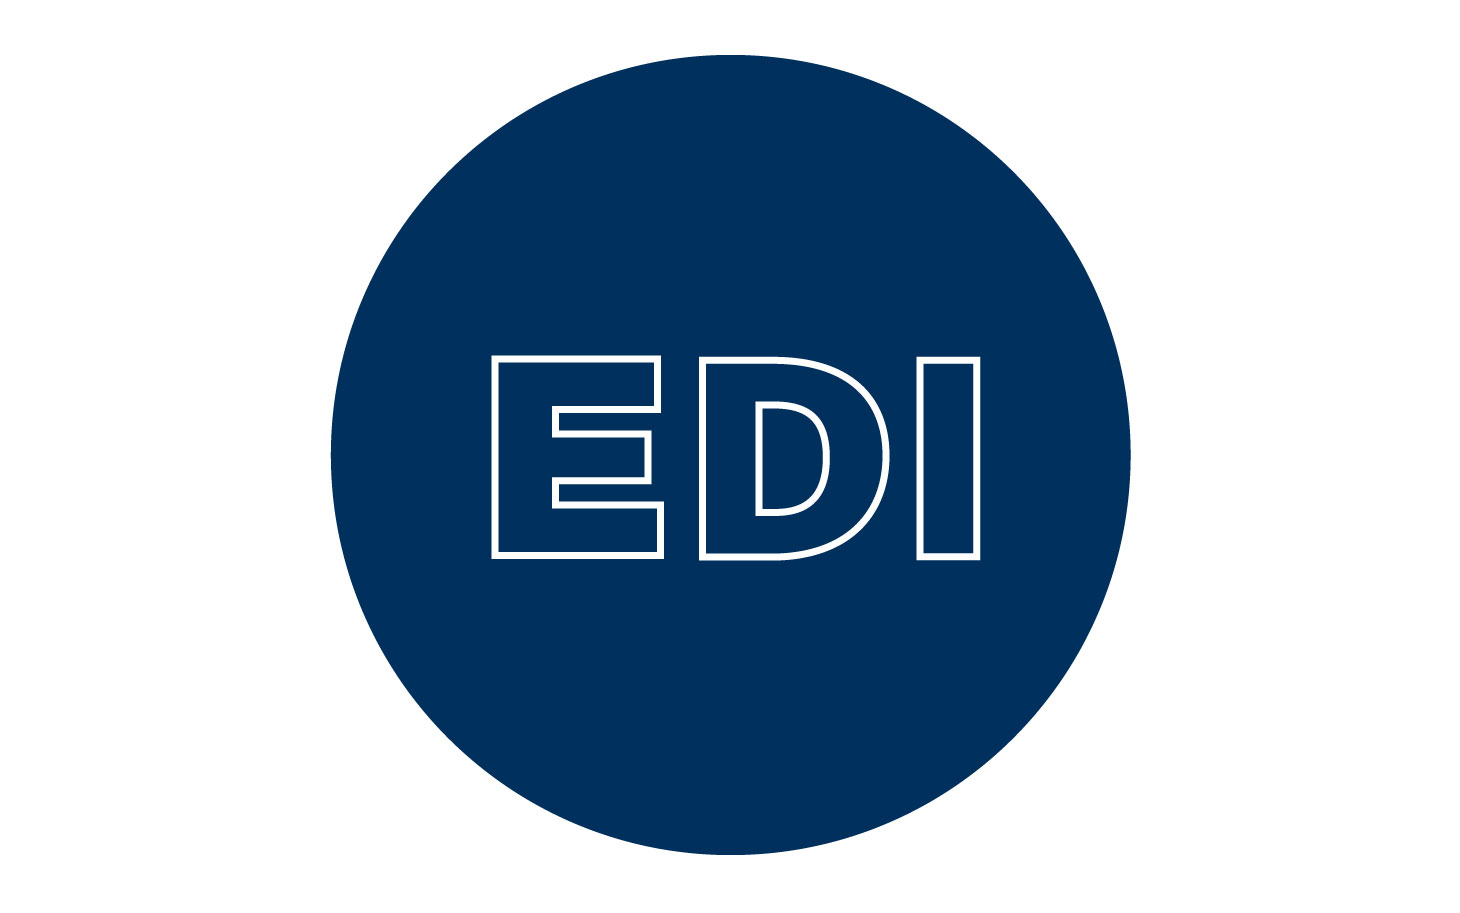 EDI interface